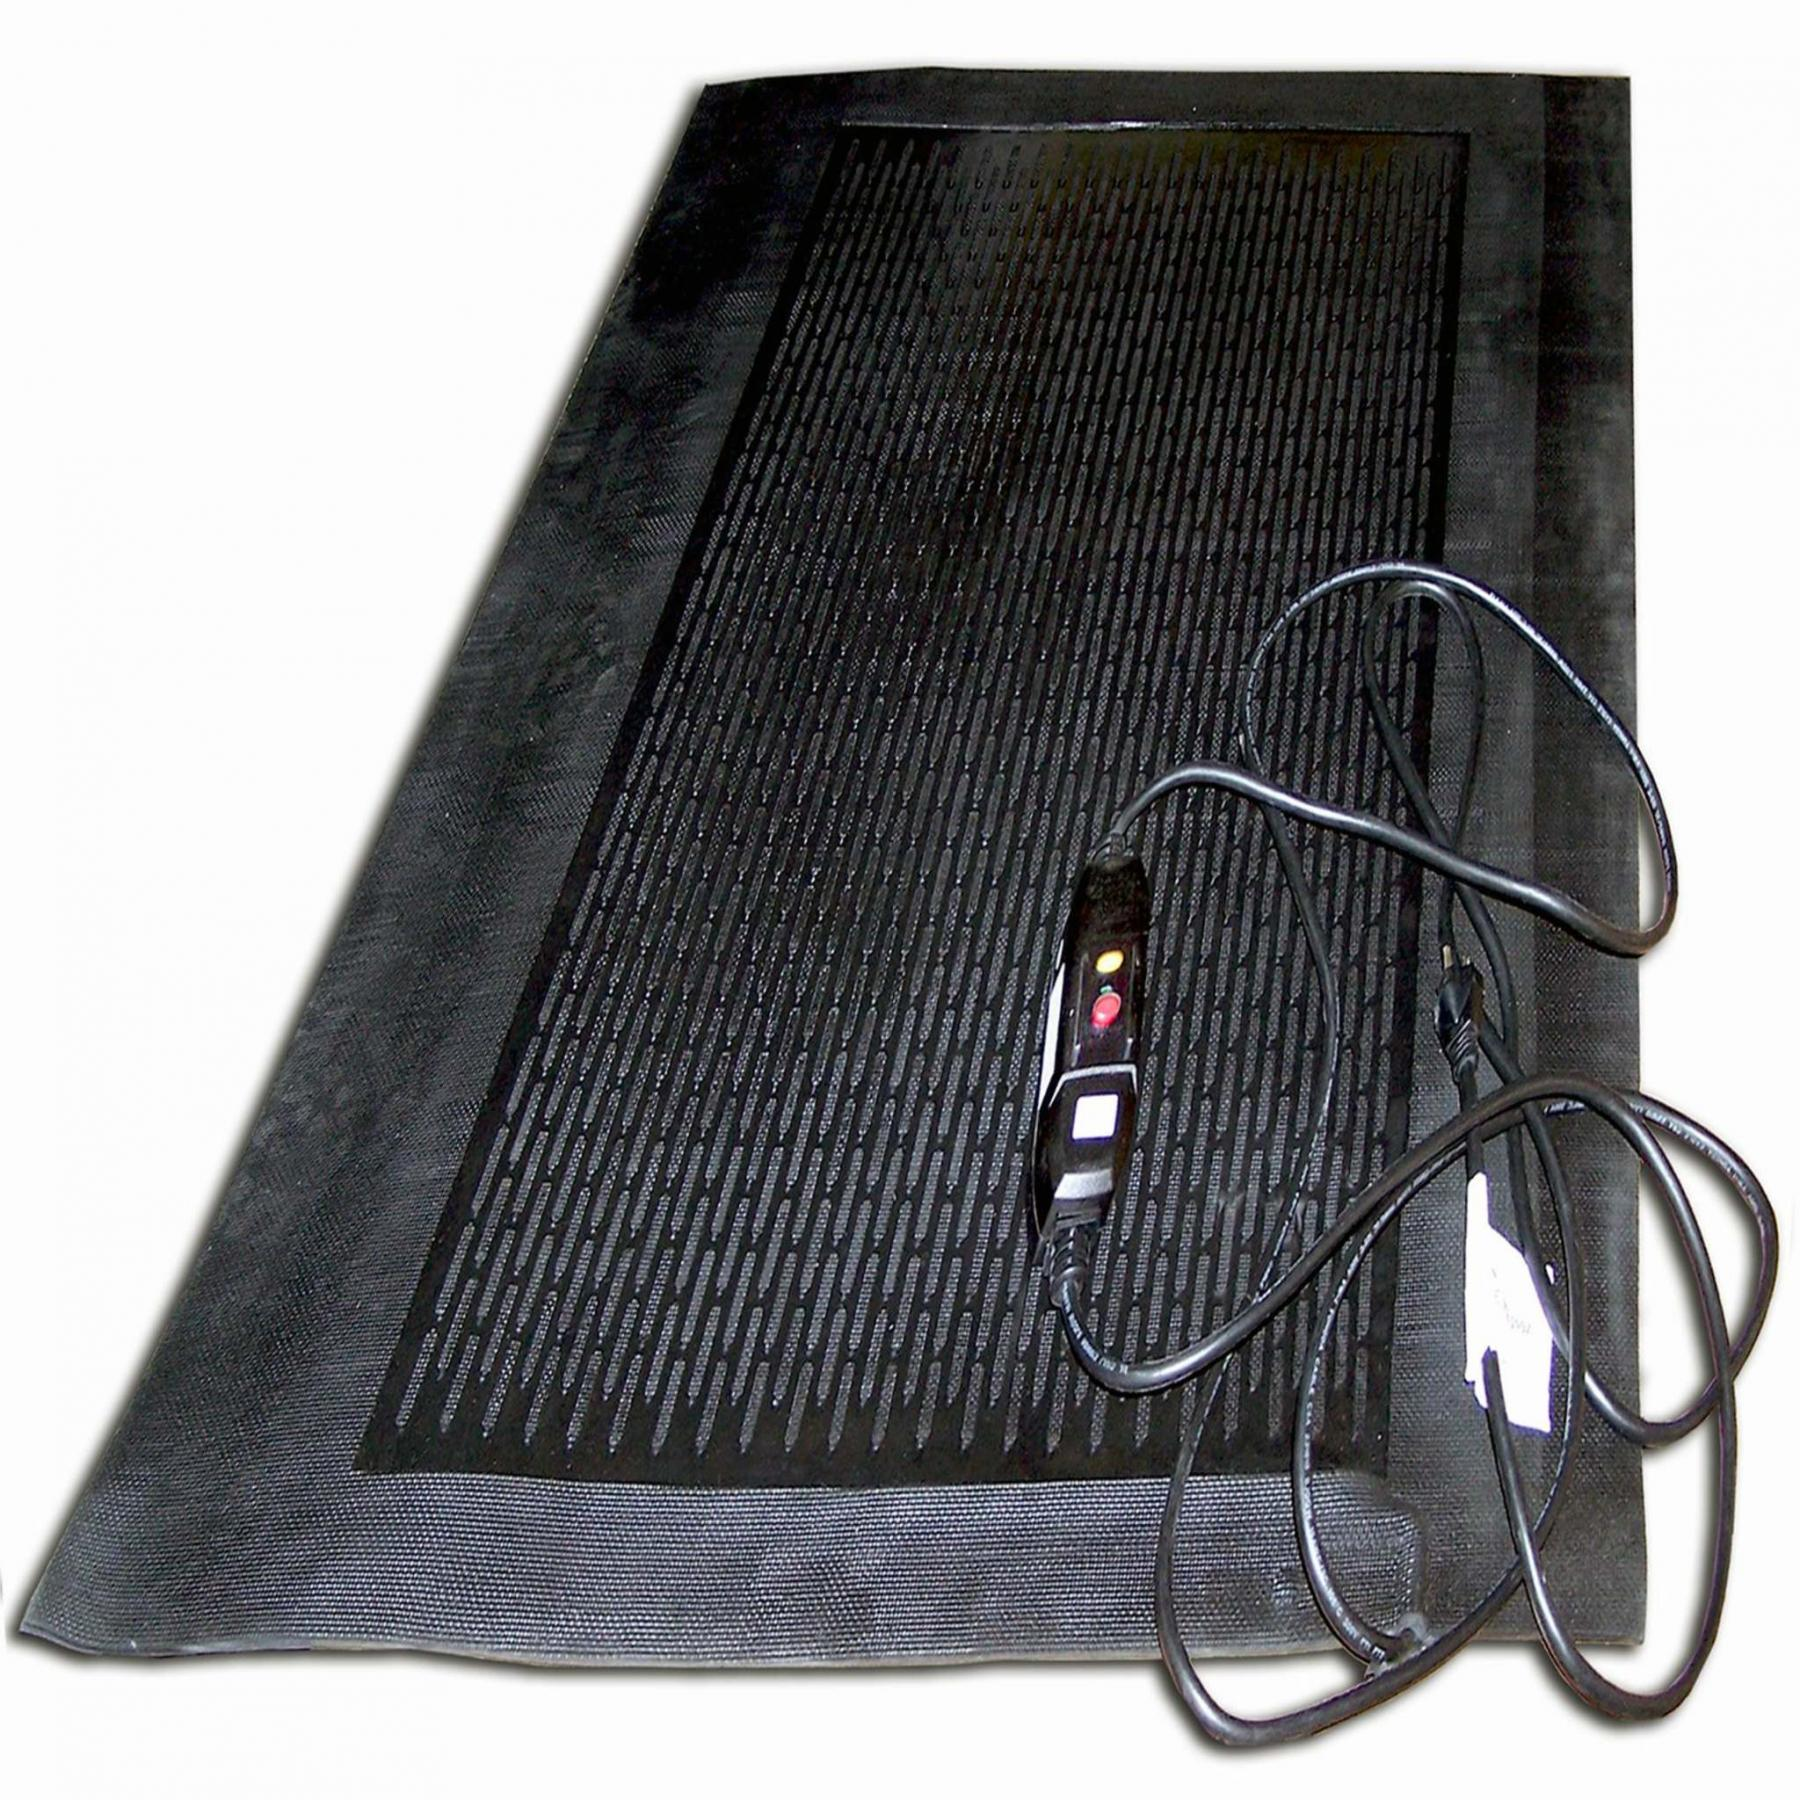 <p>Cozy Products</p><p>Cozy Products Ice-Away Heated Ice and Snow Melting Mat can keep your steps and sidewalks slip-free all winter.</p>